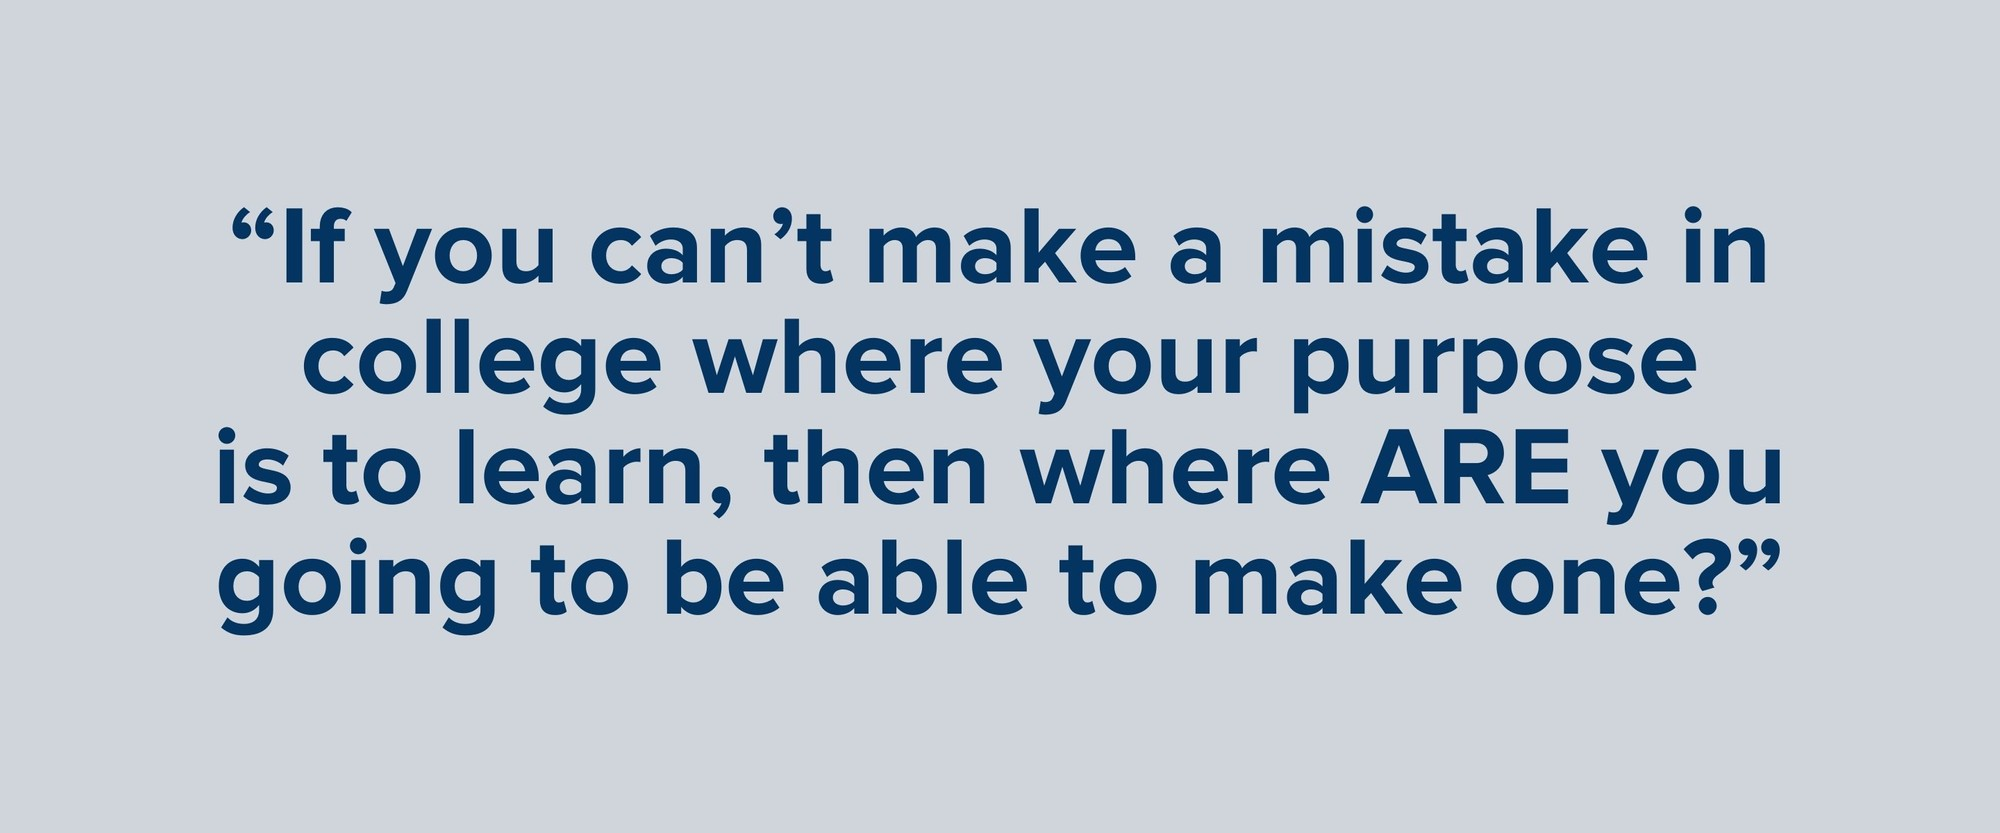 """""""If you can't make a mistake in college where your purpose is to learn, then where ARE you going to be able to make one?"""""""